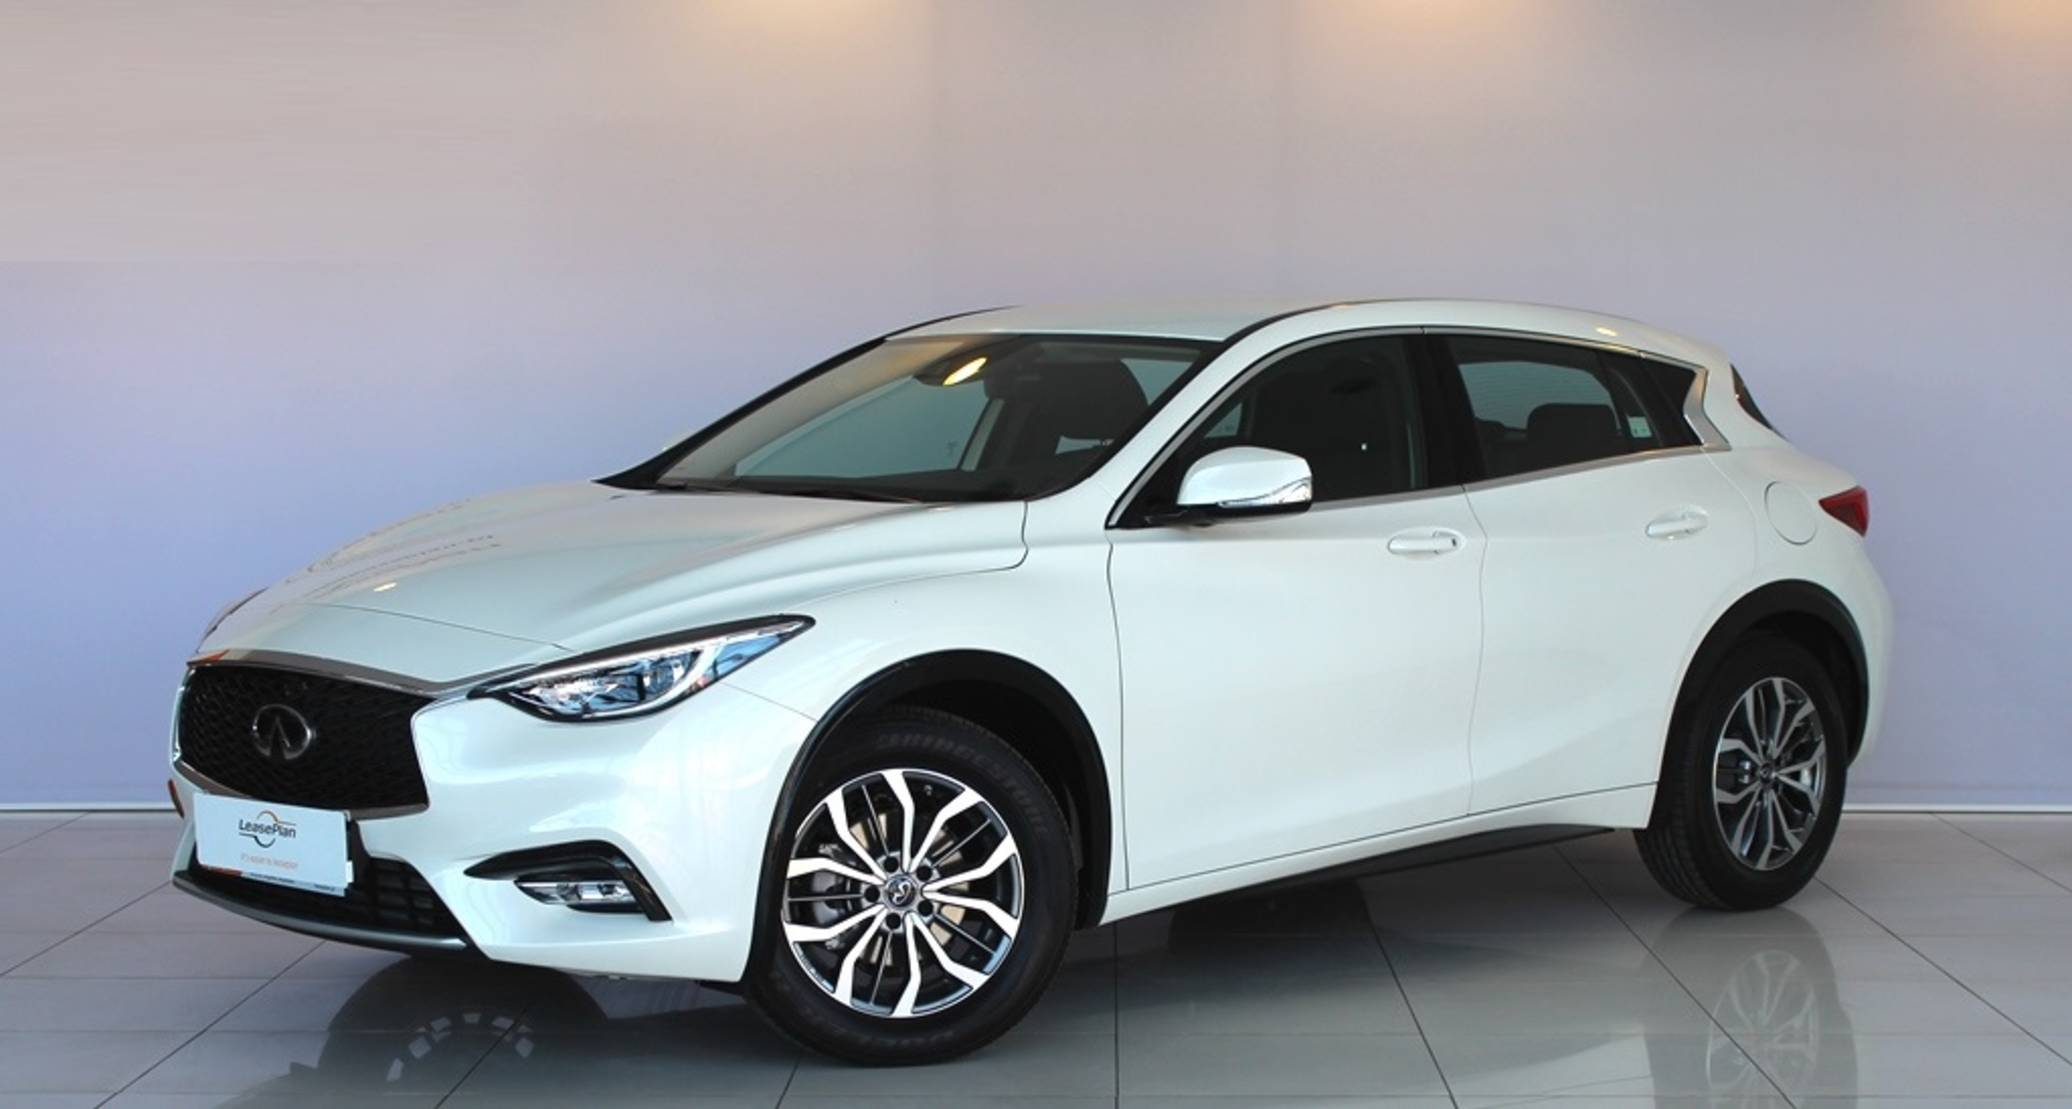 Infiniti Q30 1.5d Business Automat NOWY Salon PL detail1